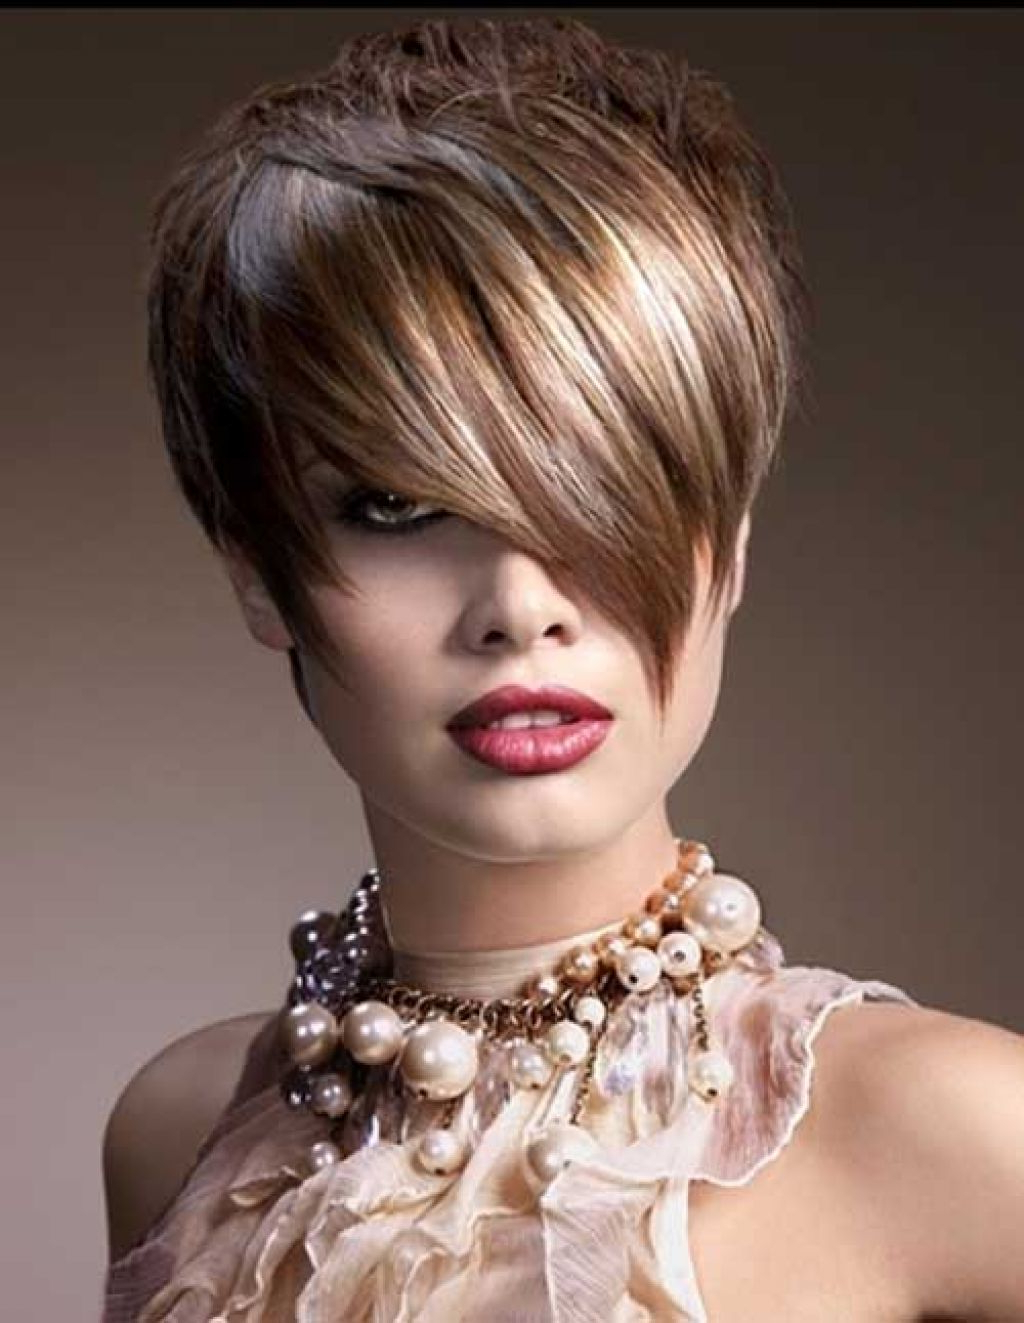 Find Out Full Gallery Of Unique Cute Fall Hair Colors For Short Hair Regarding Cute Color For Short Hair (View 19 of 25)